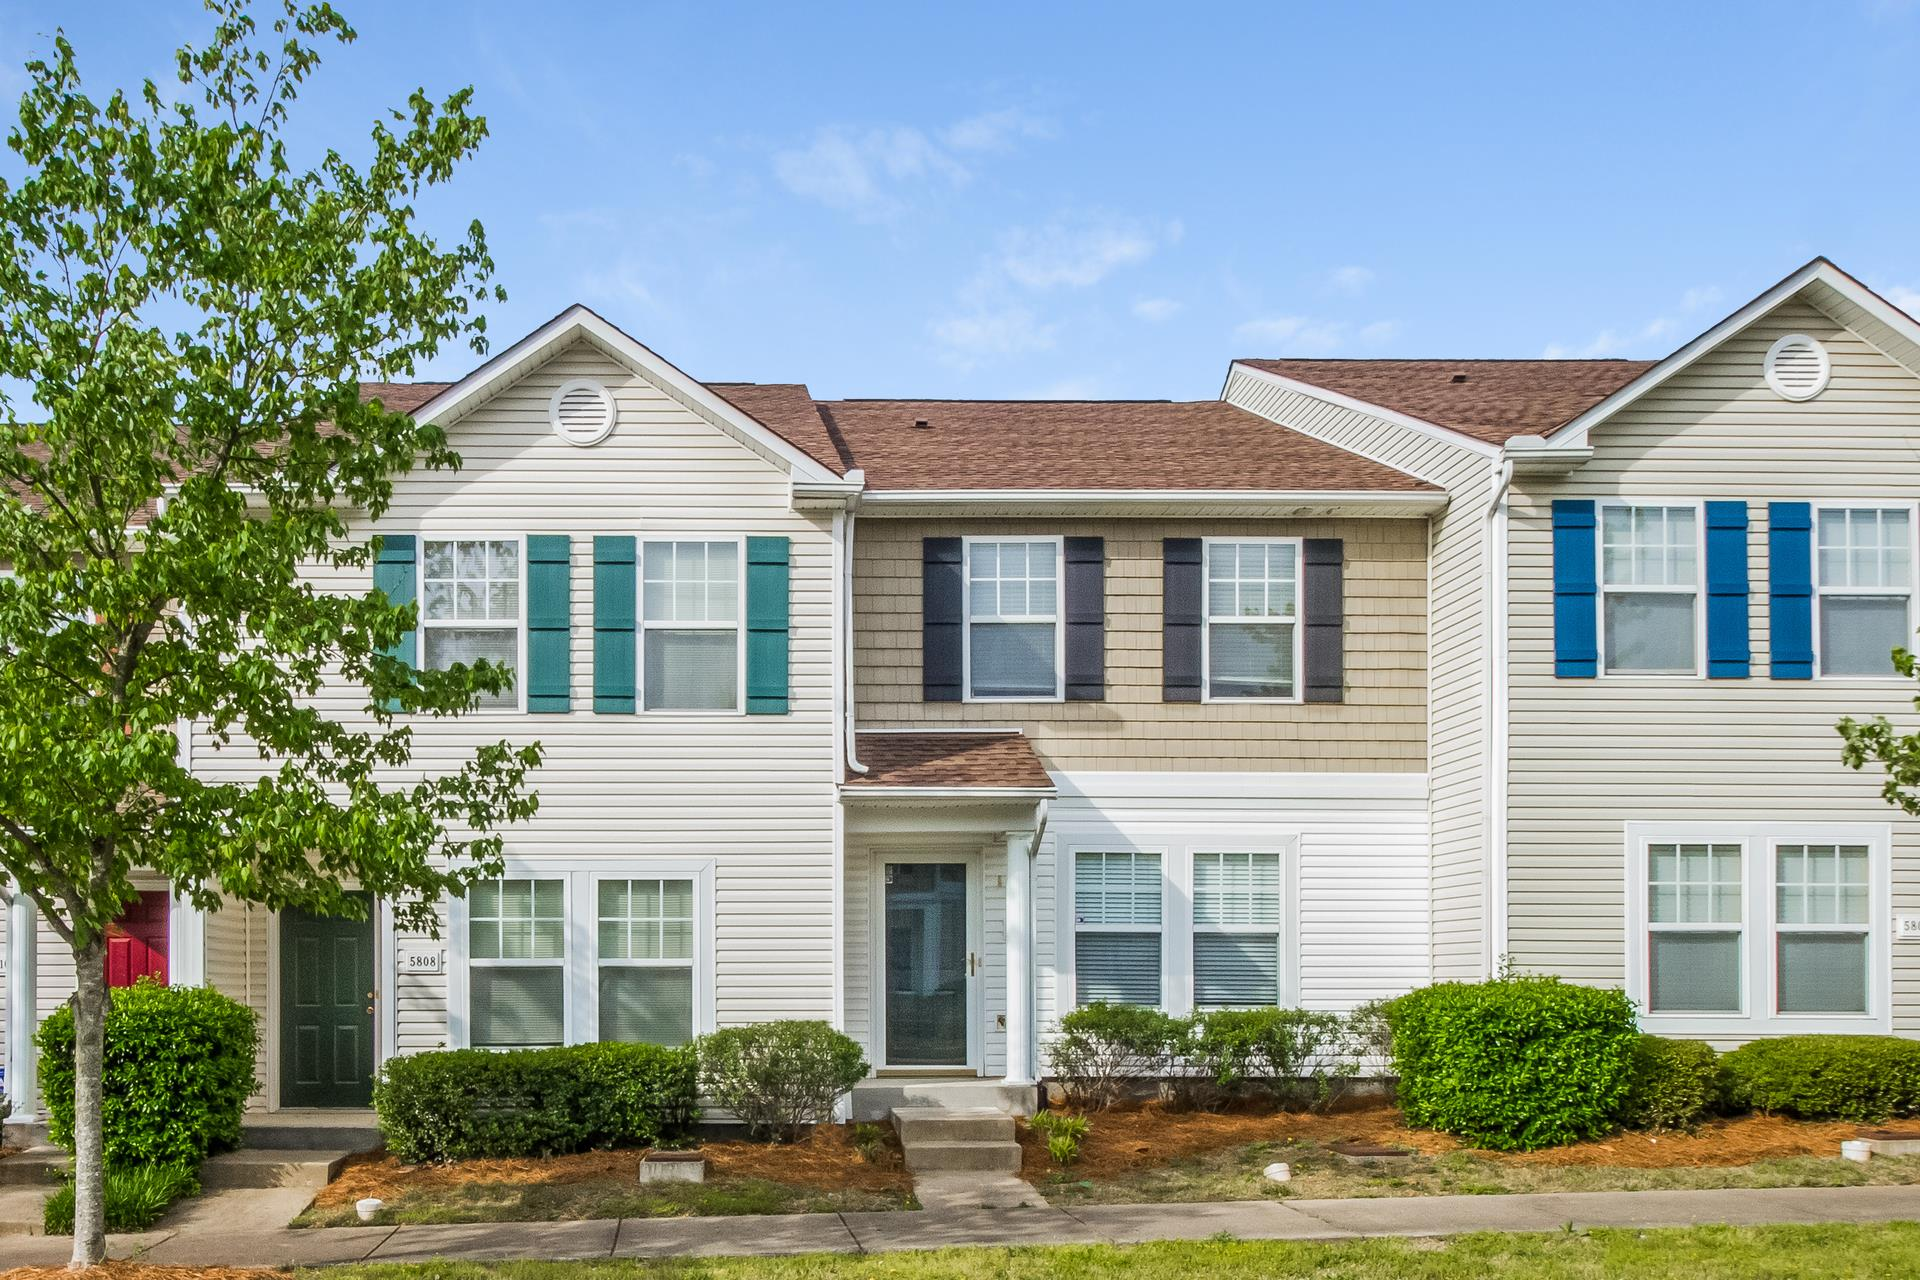 5806 Monroe Xing, Nashville-Antioch in Davidson County County, TN 37013 Home for Sale